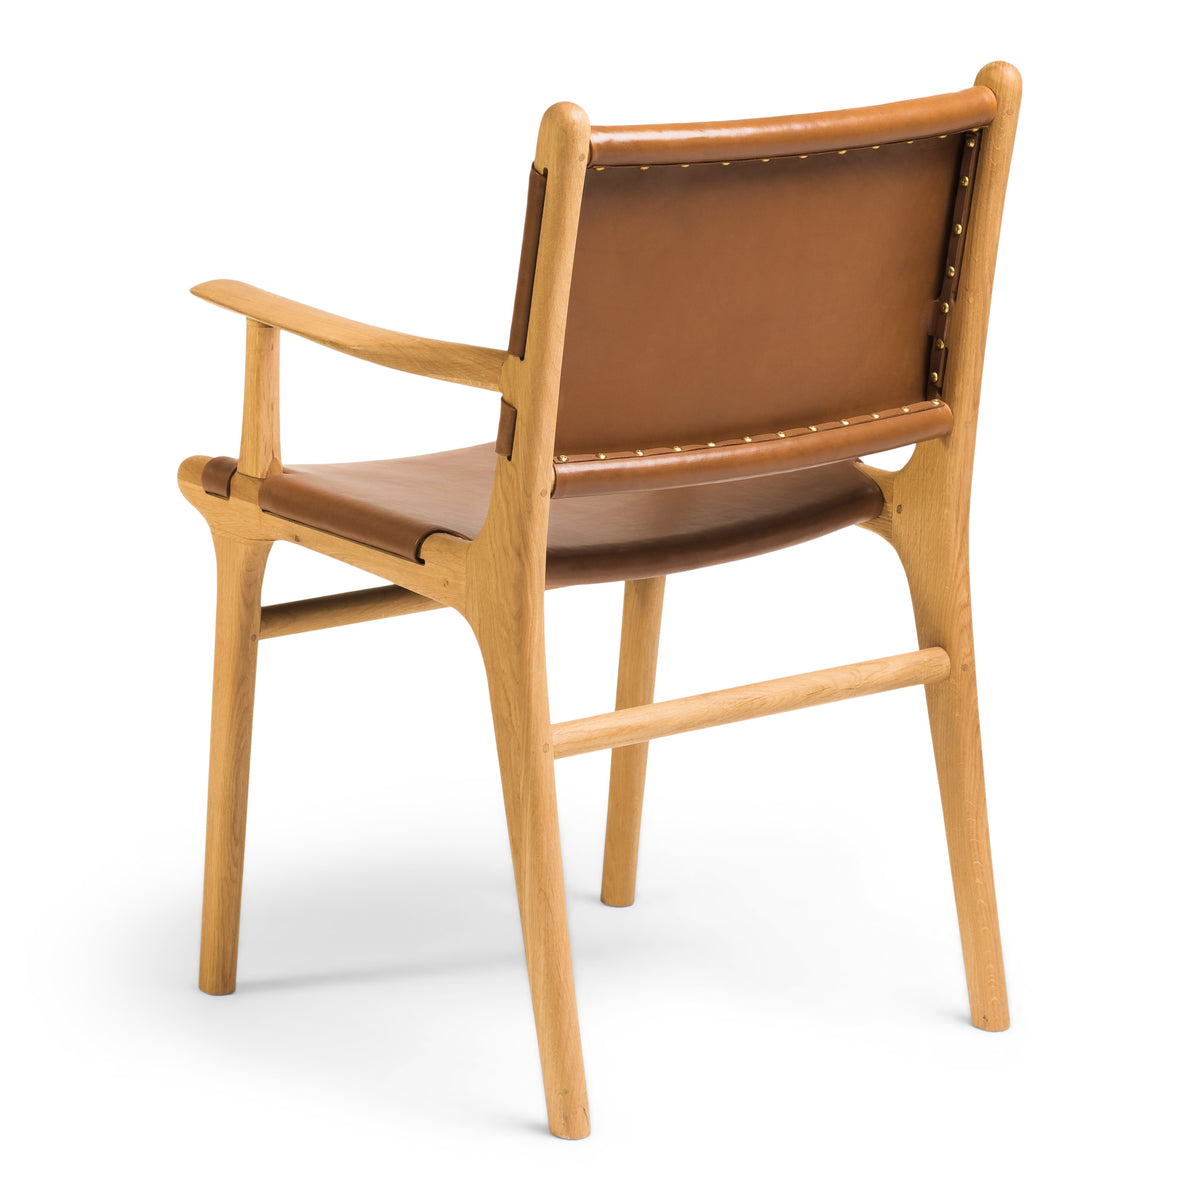 Fenwick Dining Chair - Tan